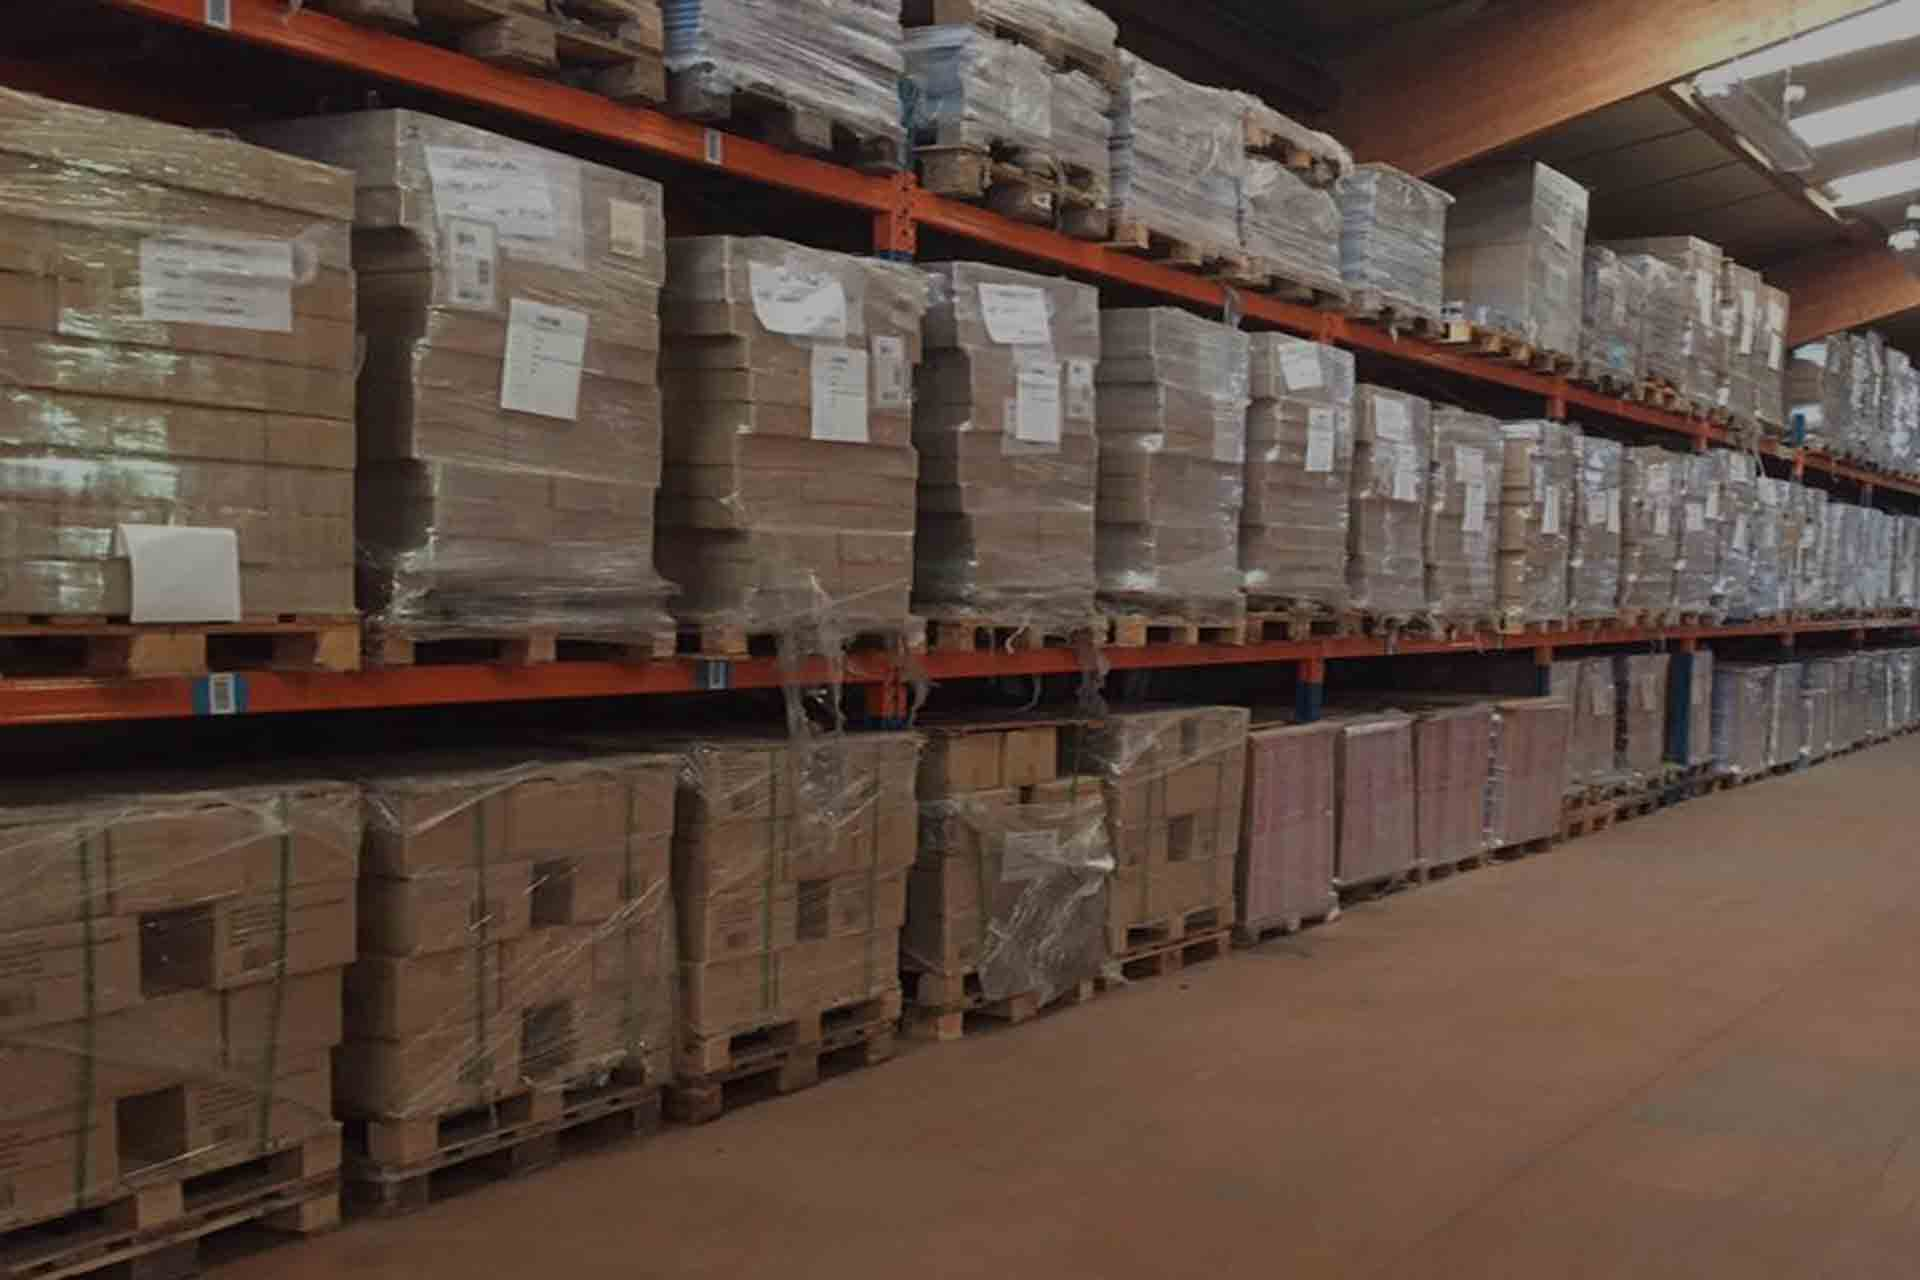 Transport transport stockage particuliers - Transport meuble particulier ...